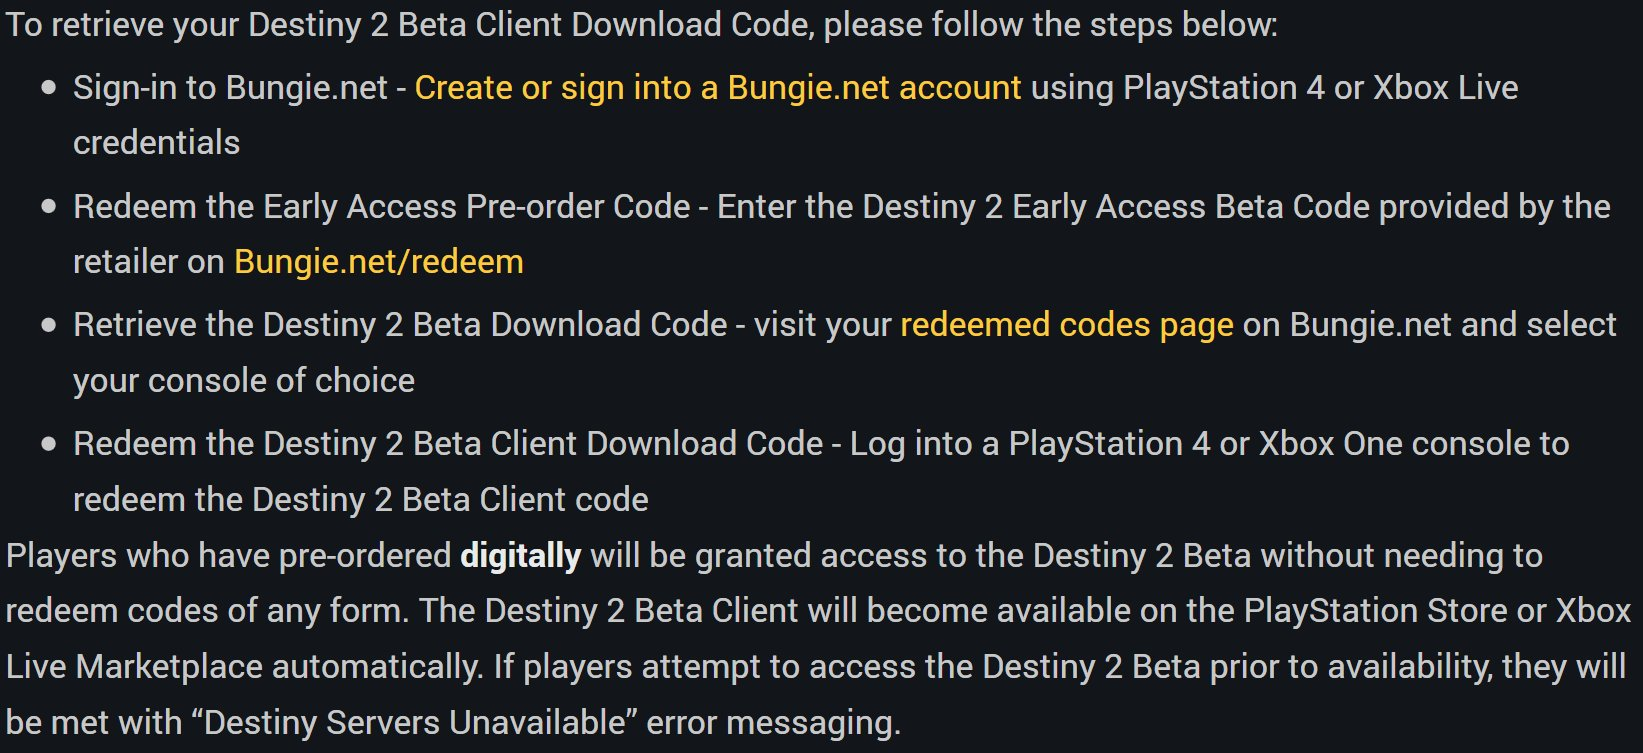 Pre order code recovery form - Planet Destiny On Twitter Beta Faq Https T Co Teqy2ullqq Https T Co Rretsnl7re